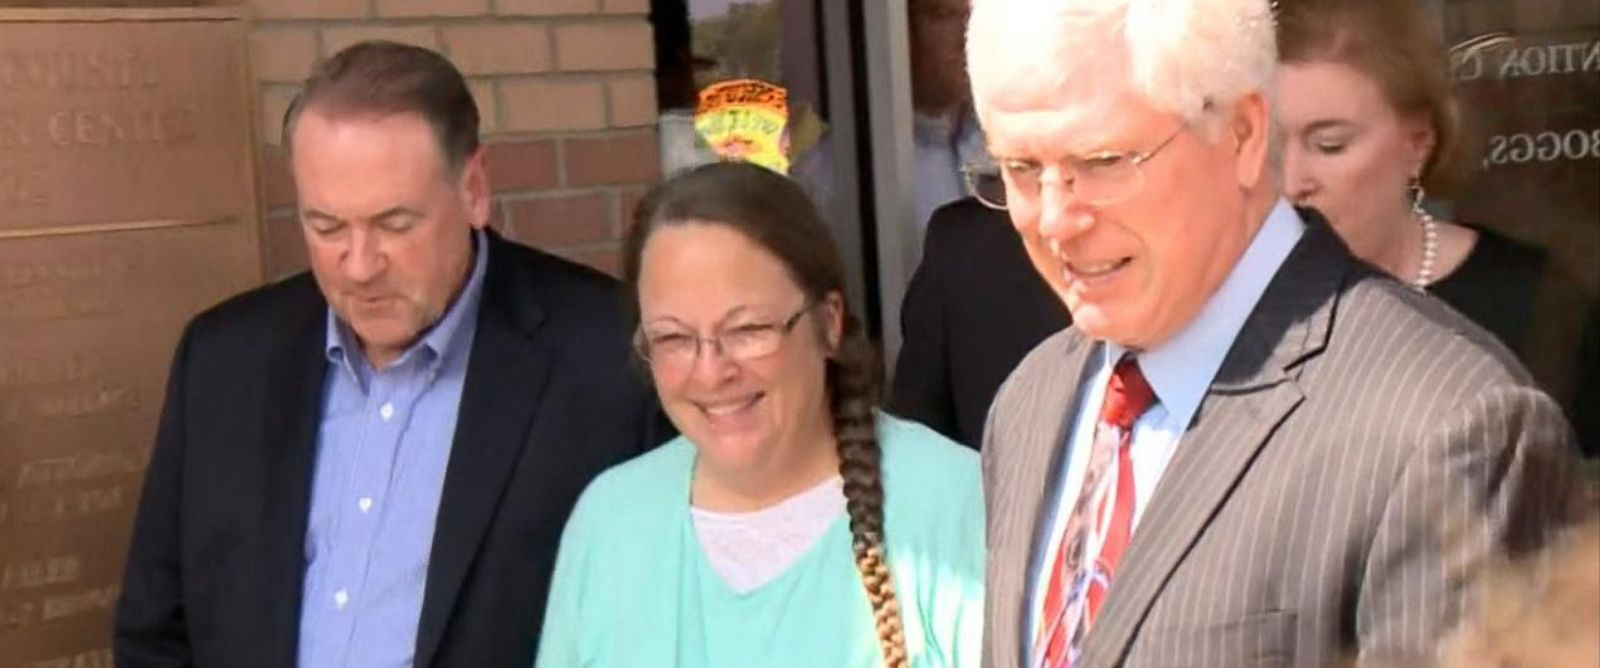 PHOTO: Mike Huckabee, left, and Kim Davis, center, are pictured on Sept. 8, 2015.